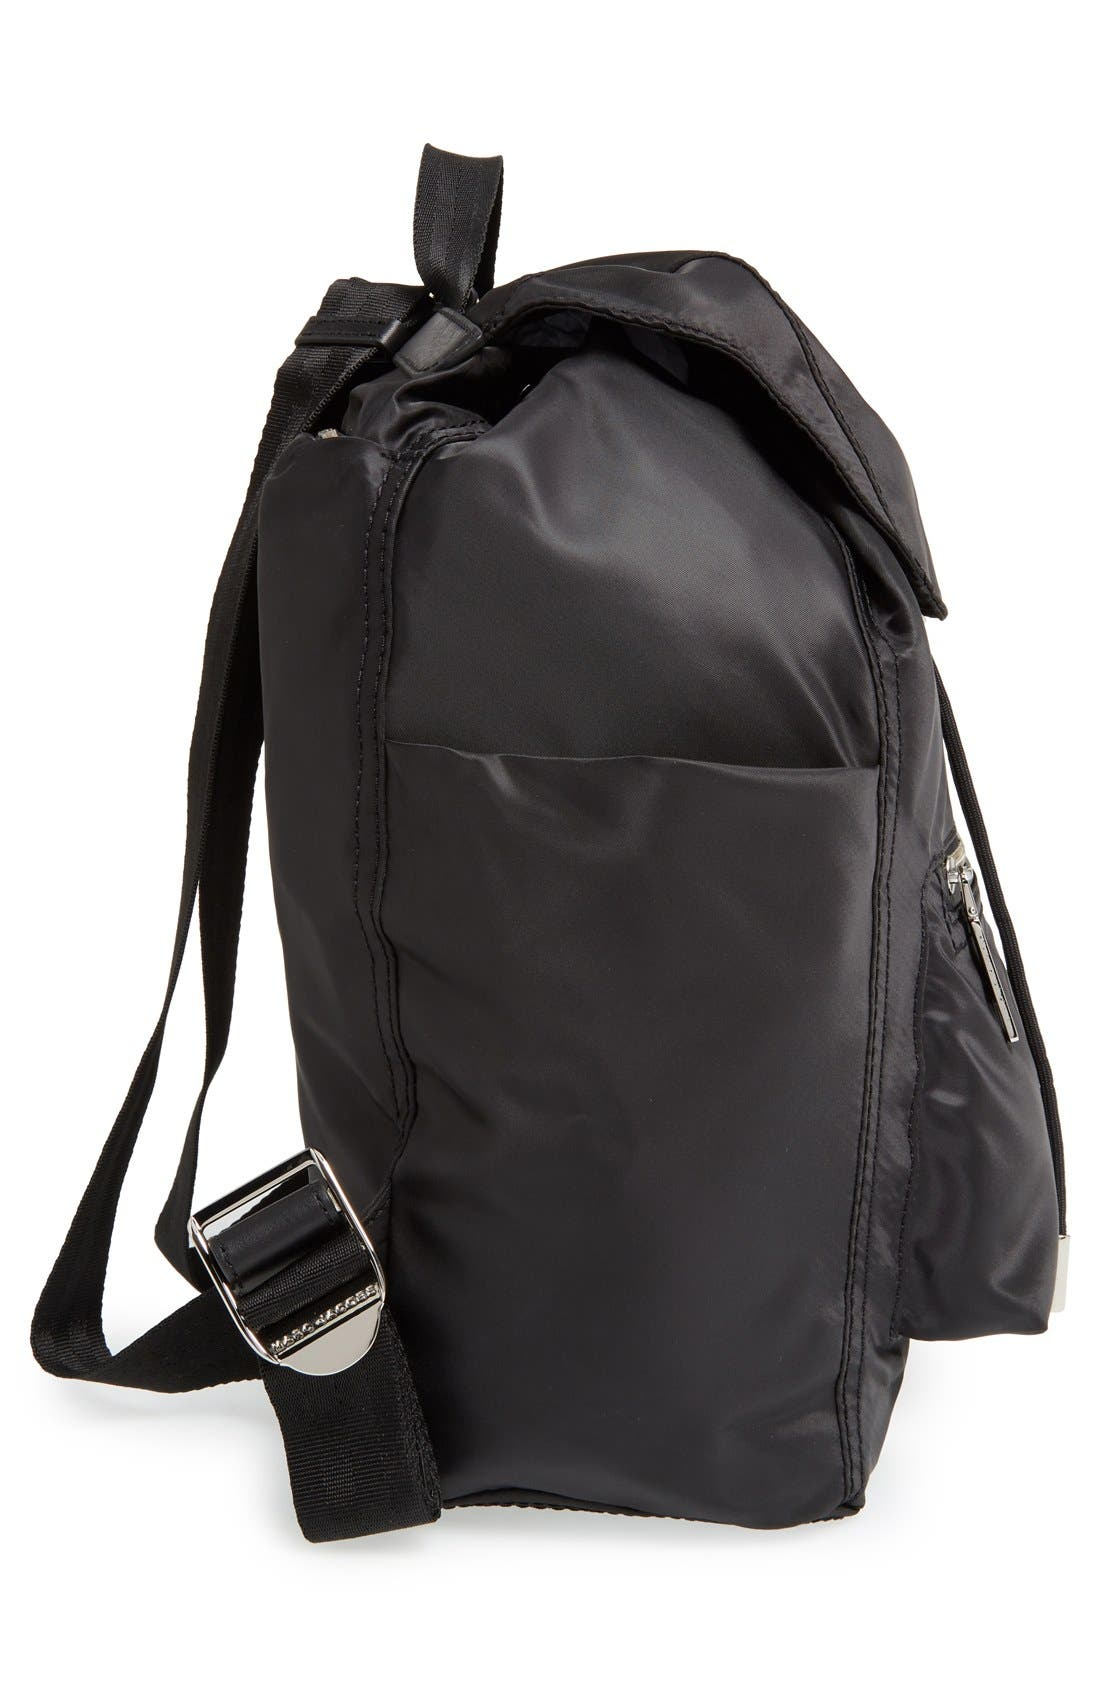 MARC JACOBS,                             'Easy' Backpack,                             Alternate thumbnail 4, color,                             001